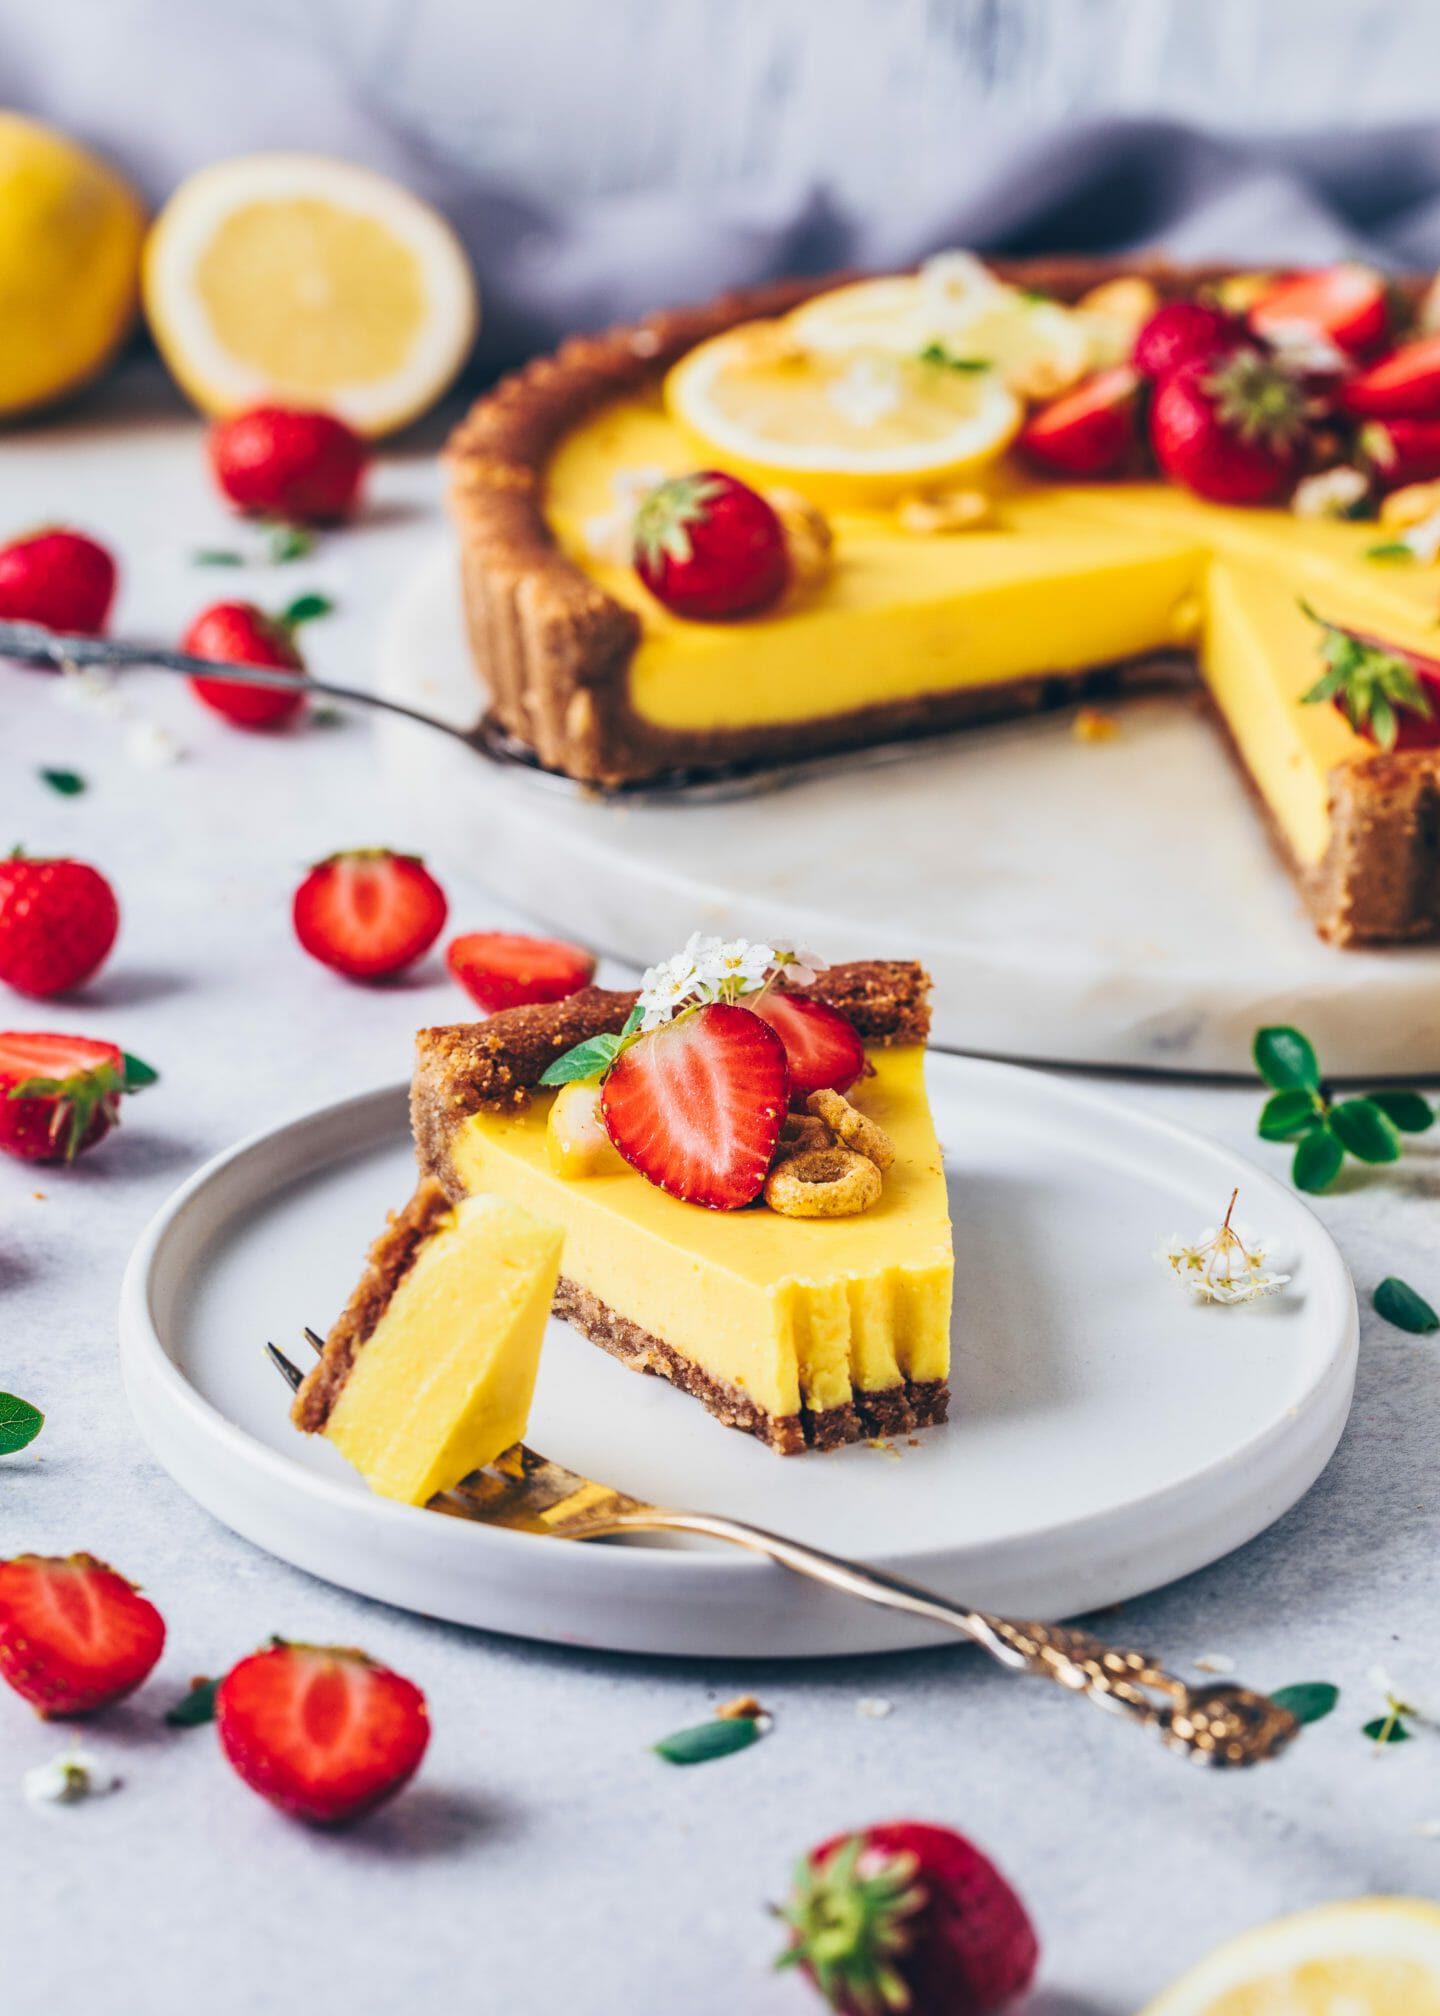 Vegan Lemon Curd Tart with Strawberries (Easy, Gluten-free, No-Bake)